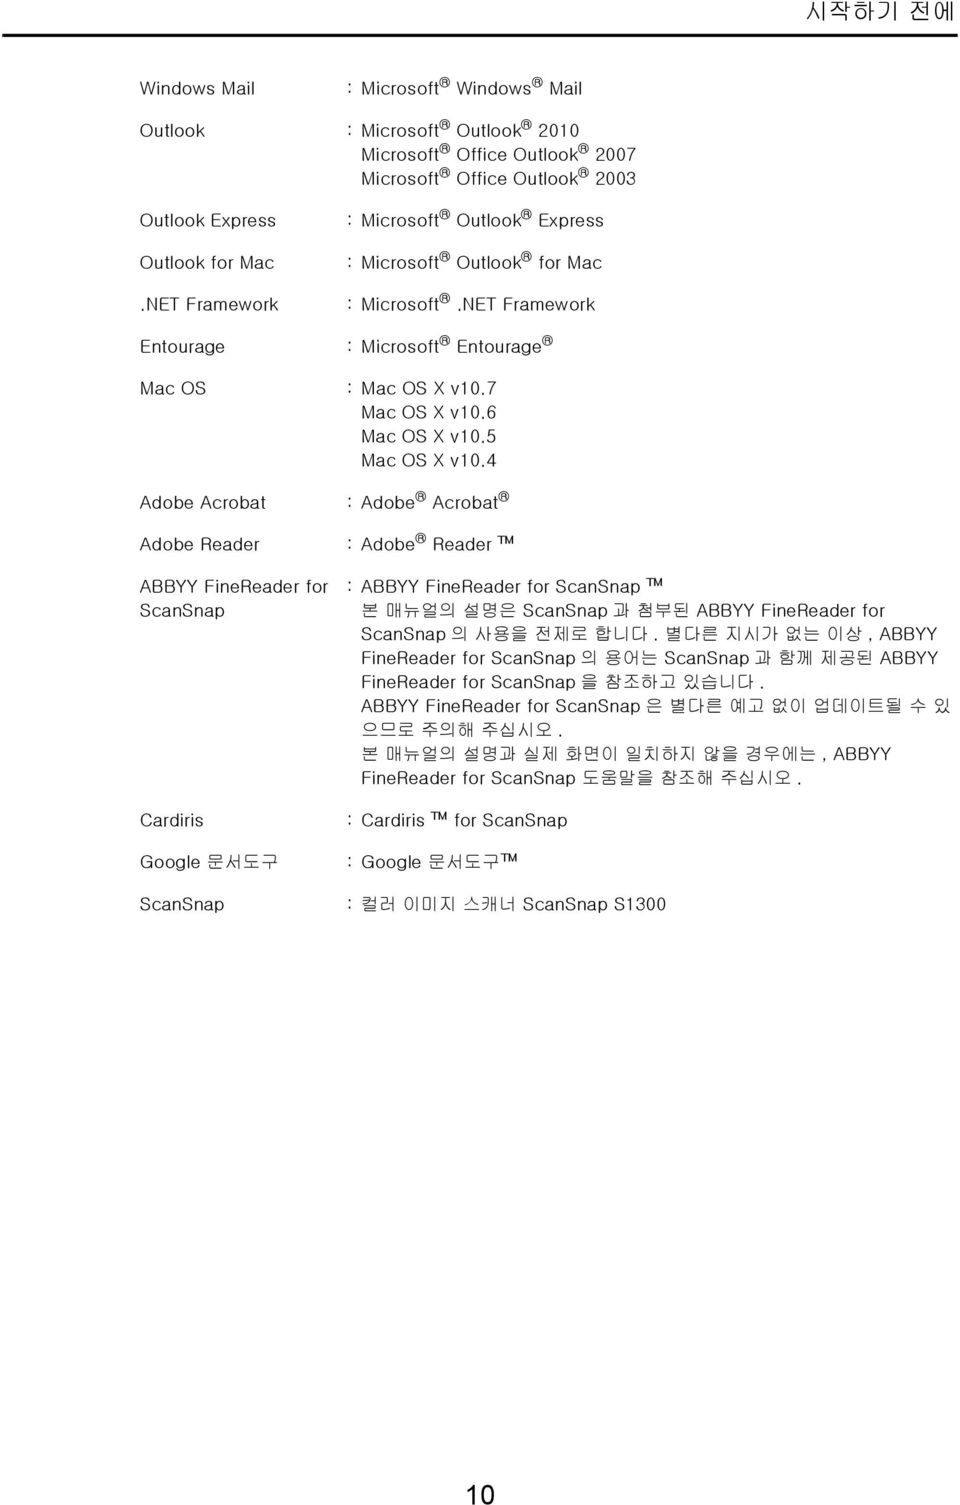 4 Adobe Acrobat : Adobe Acrobat Adobe Reader ABBYY FineReader for ScanSnap Cardiris Google 문서도구 ScanSnap : Adobe Reader : ABBYY FineReader for ScanSnap 본 매뉴얼의 설명은 ScanSnap 과 첨부된 ABBYY FineReader for